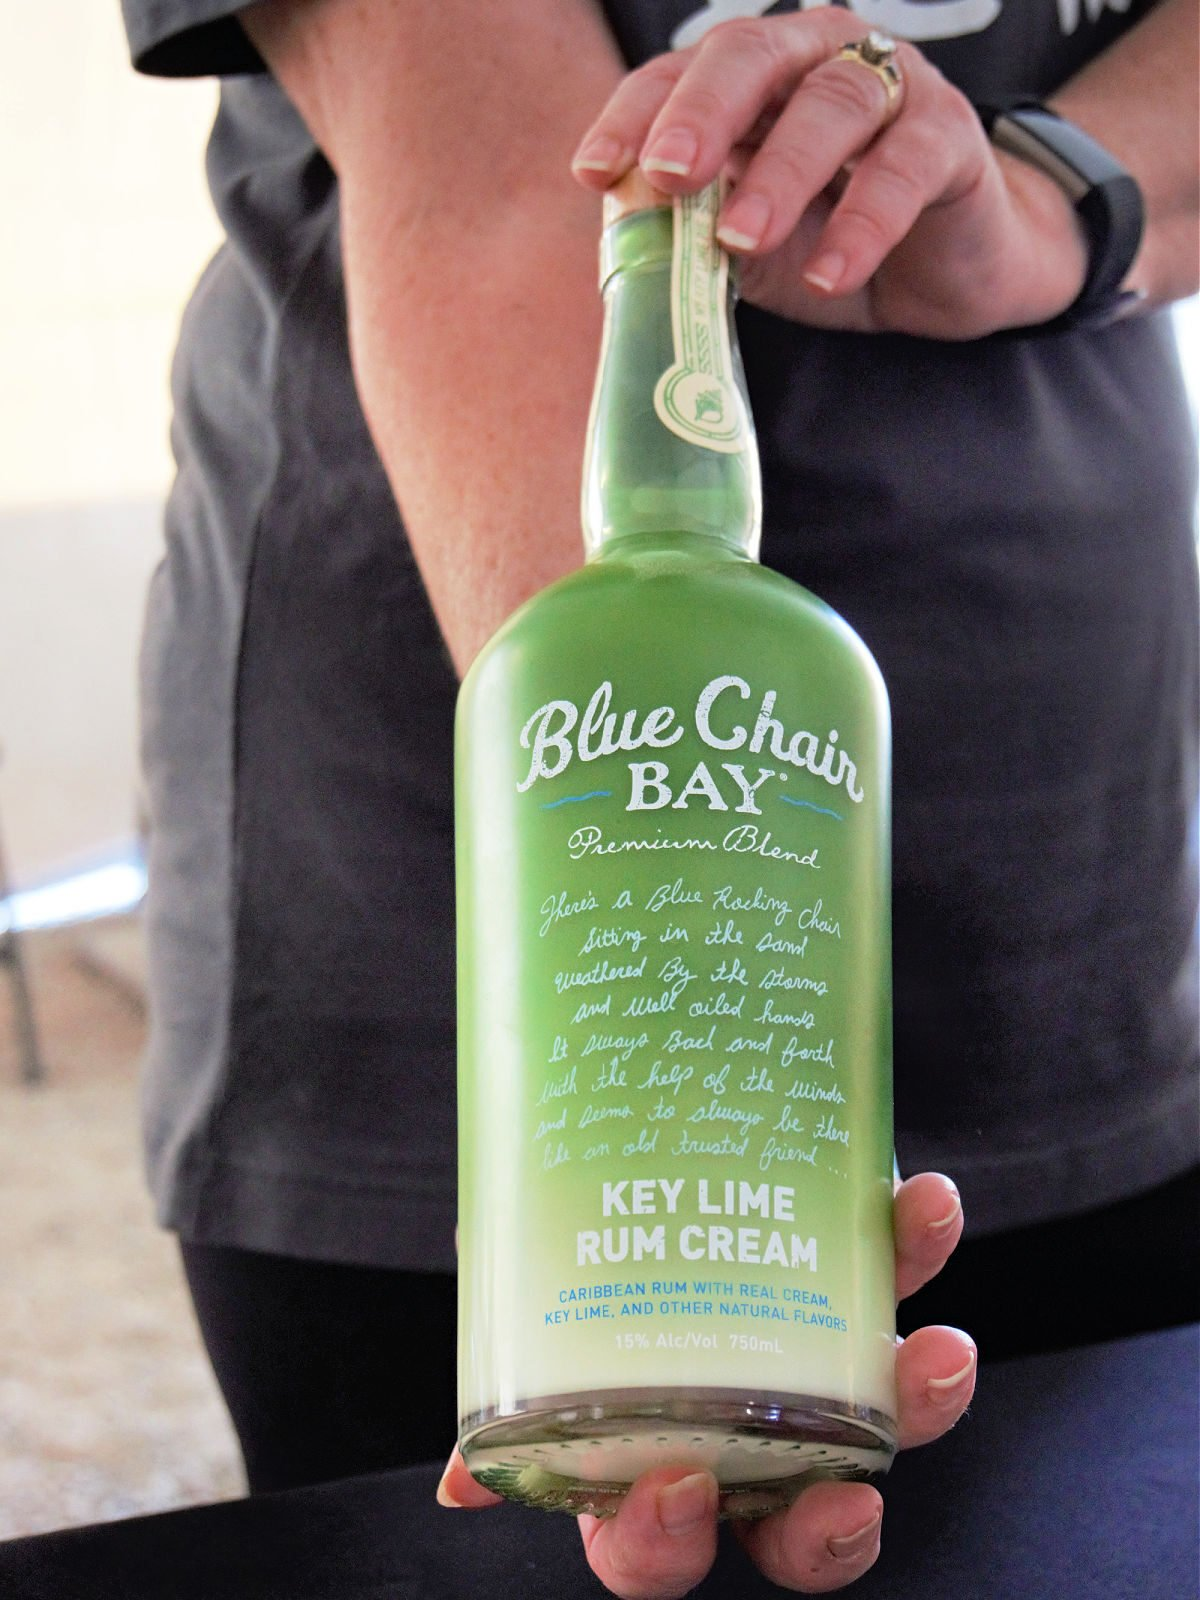 Lady holding a bottle of Blue Chair Bay Key Lime Rum Cream.